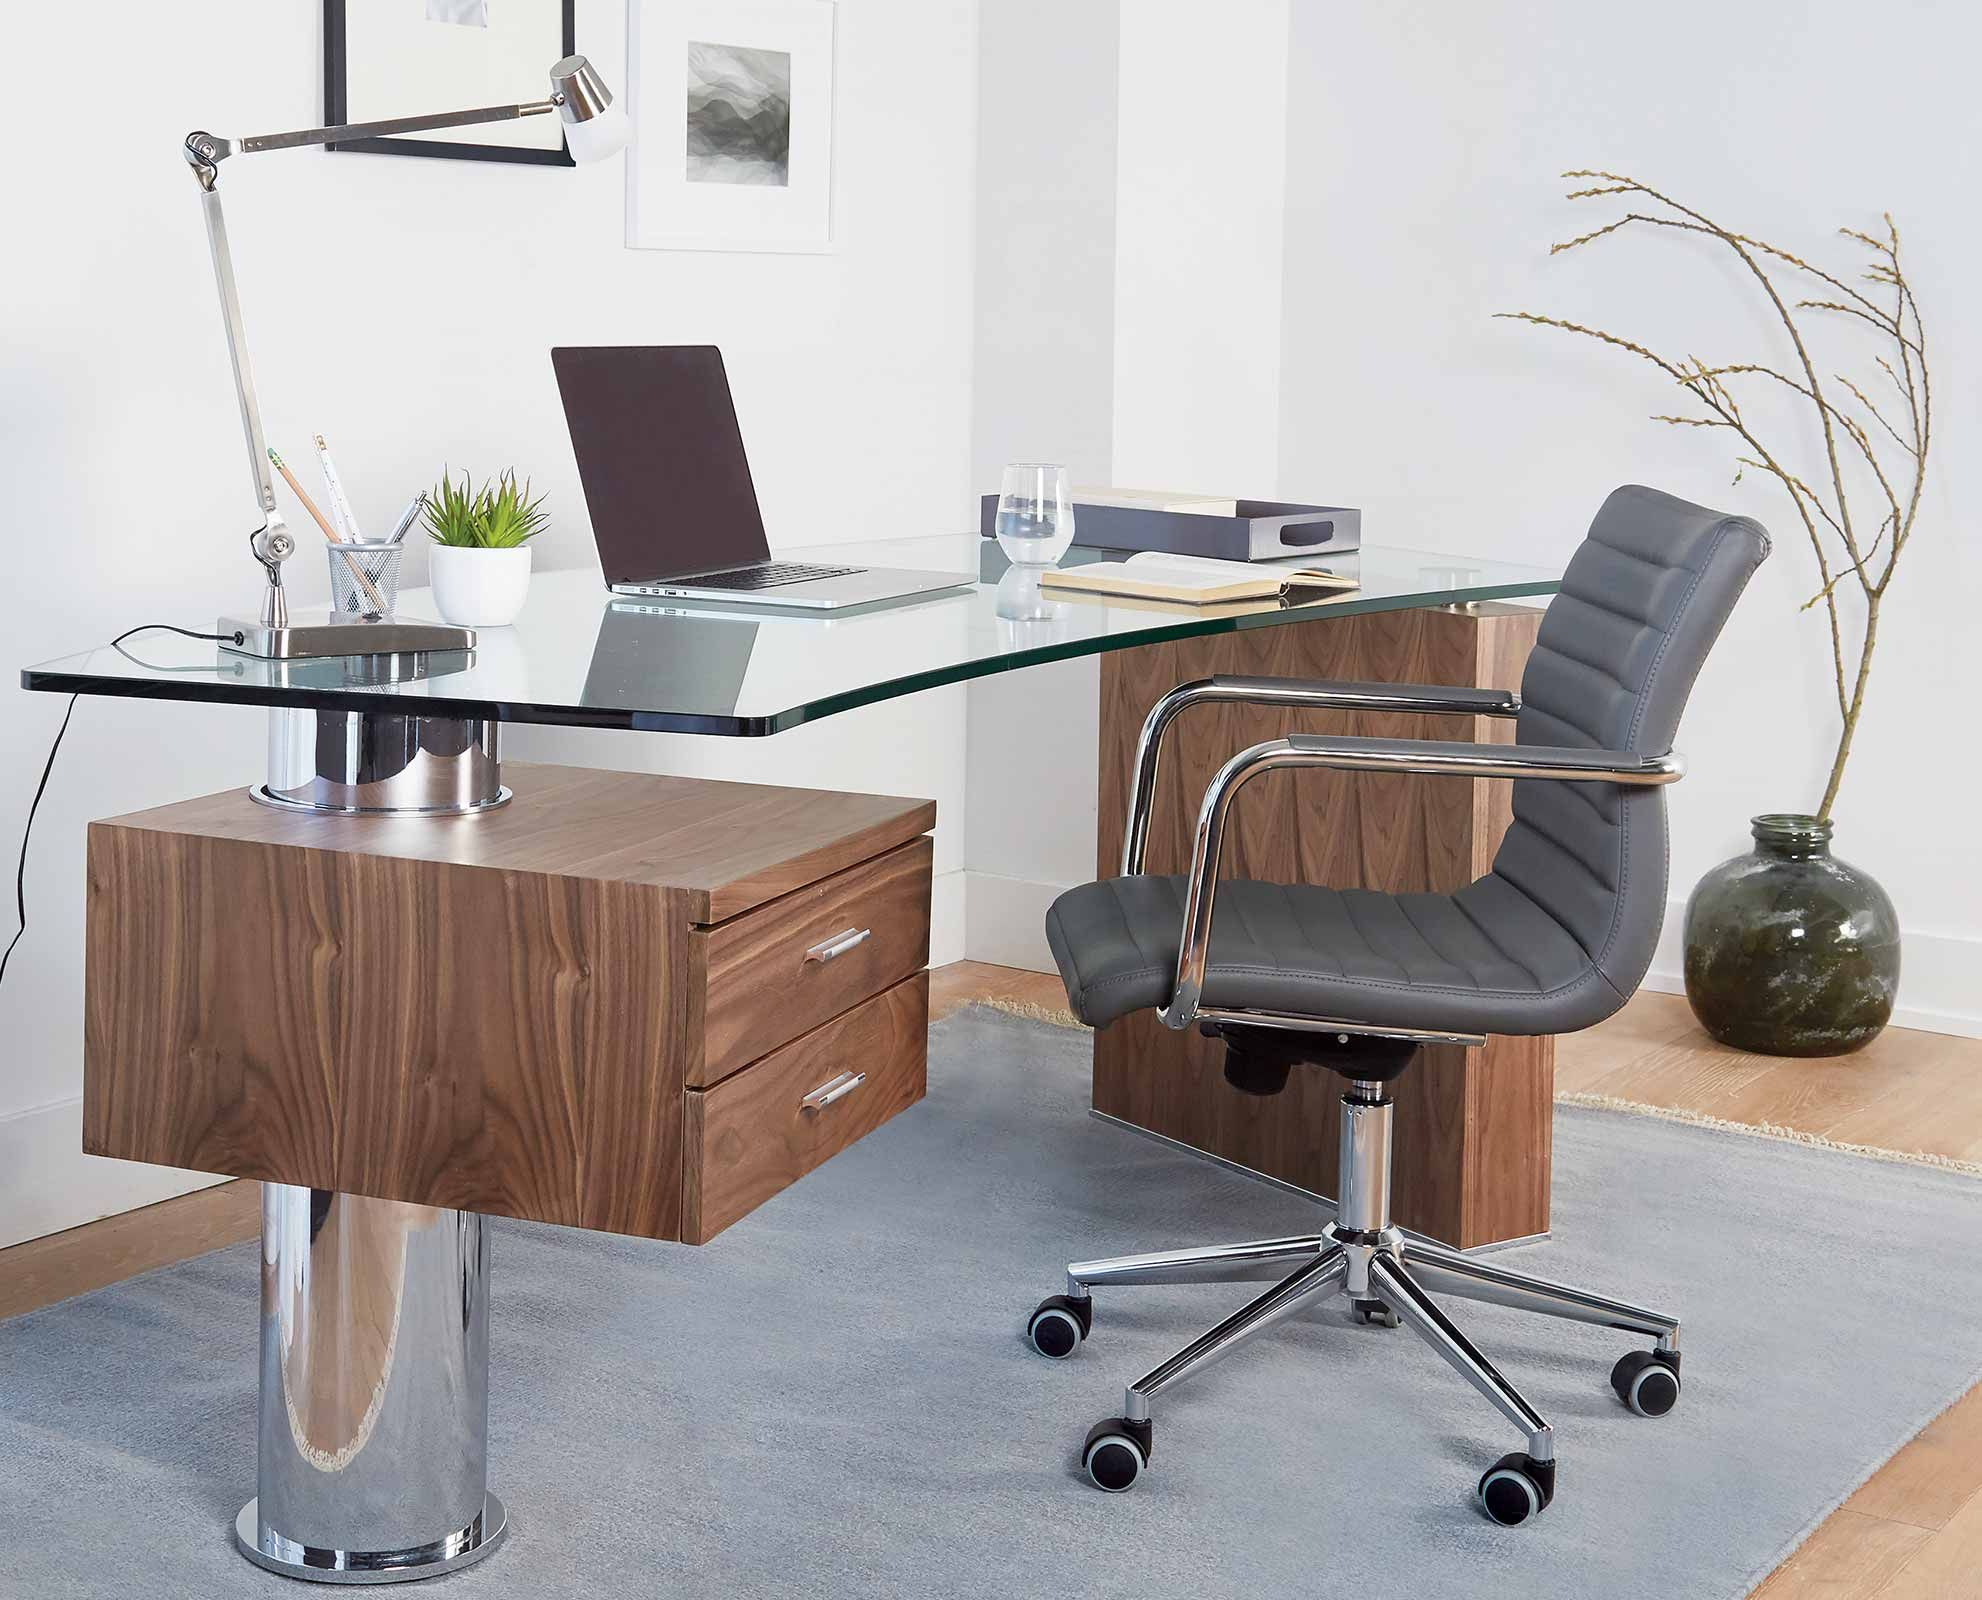 Knarvik Desk By Scandinavian Designs You Will Be Ahead Of The Curve When You Incorporate The Kn Scandinavian Design Desk Best Home Office Desk Work Space Decor